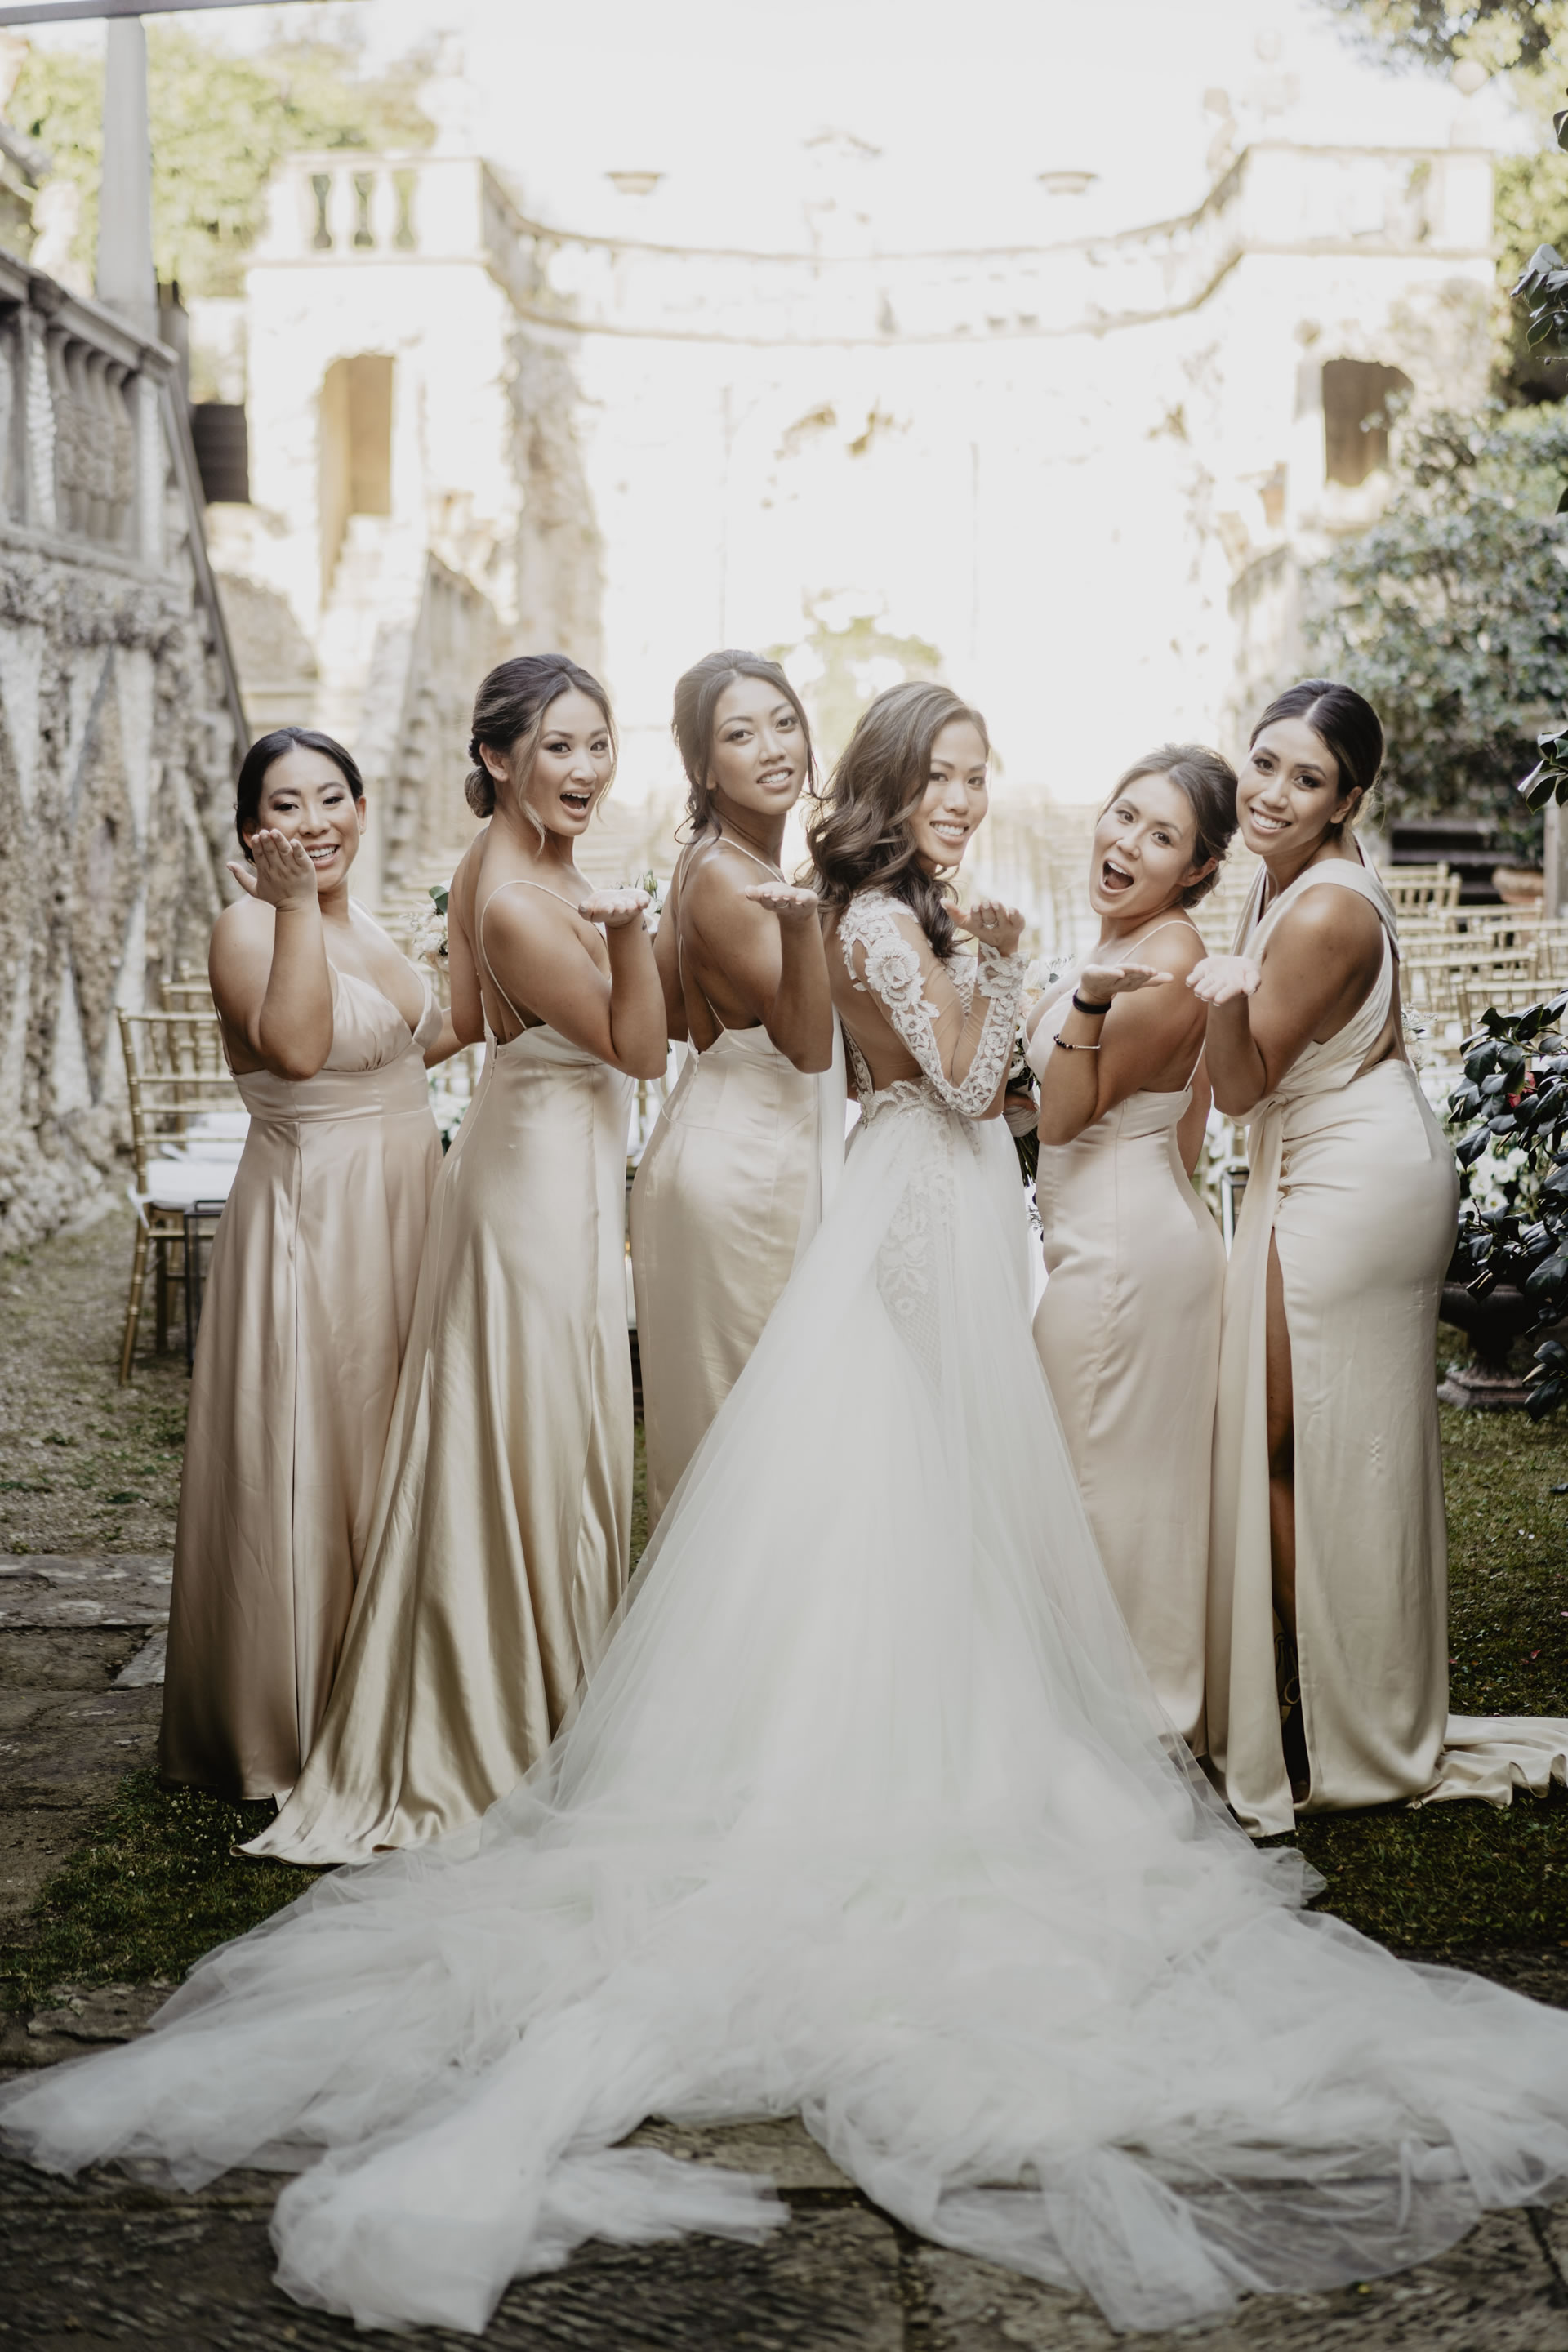 - 44 :: From Los angeles to Florence: a glamour asiatic wedding :: Luxury wedding photography - 43 ::  - 44